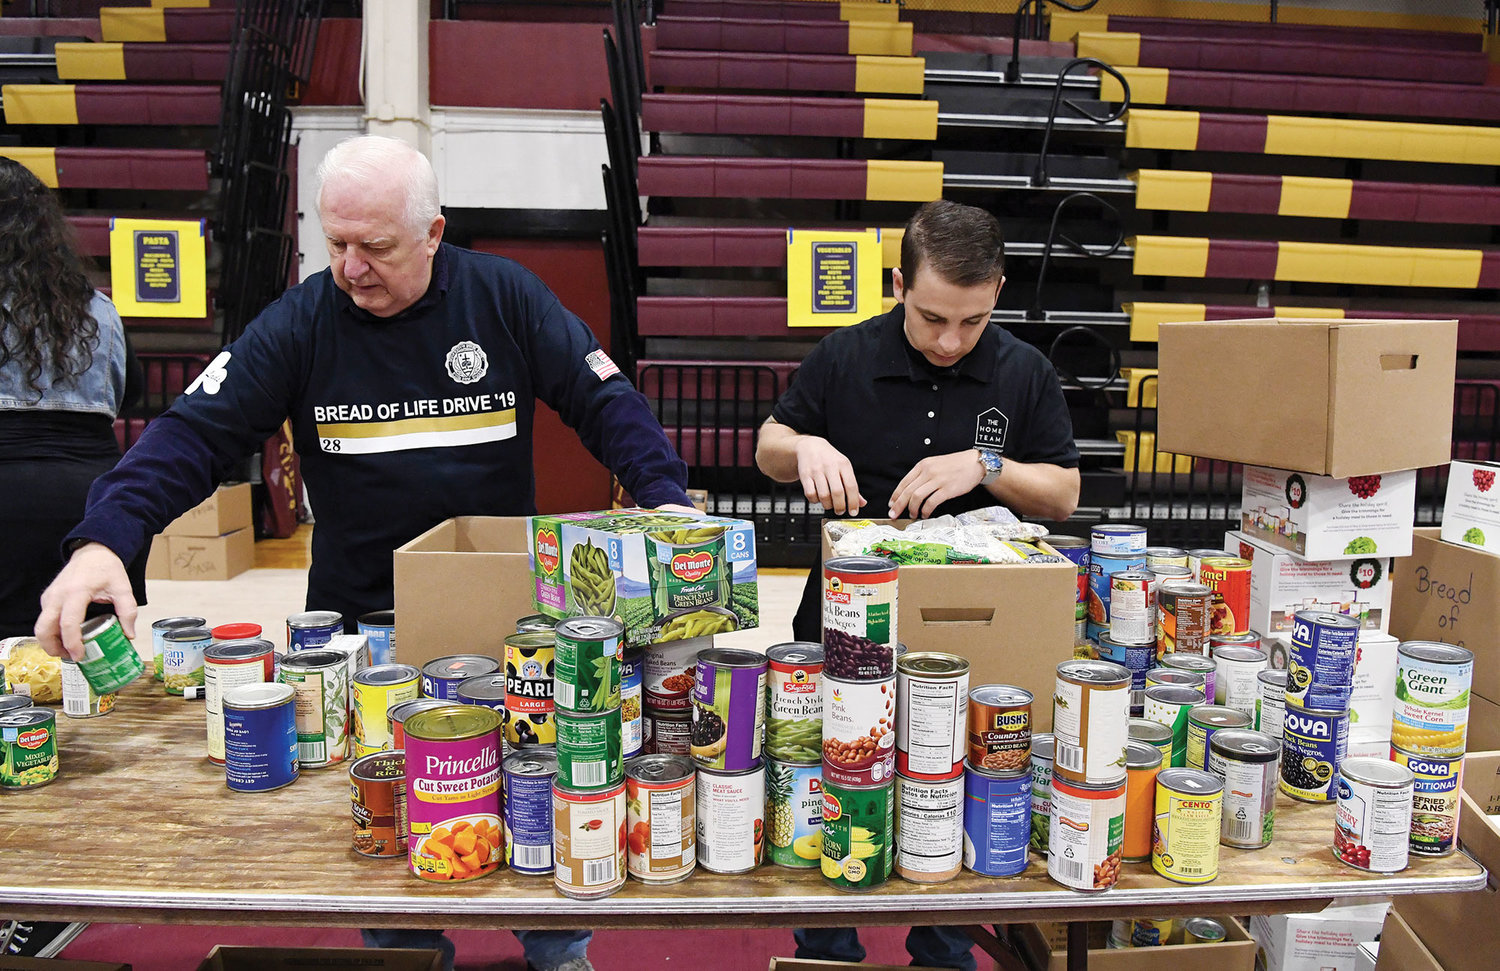 Volunteers place like food items in boxes for distribution to charities.